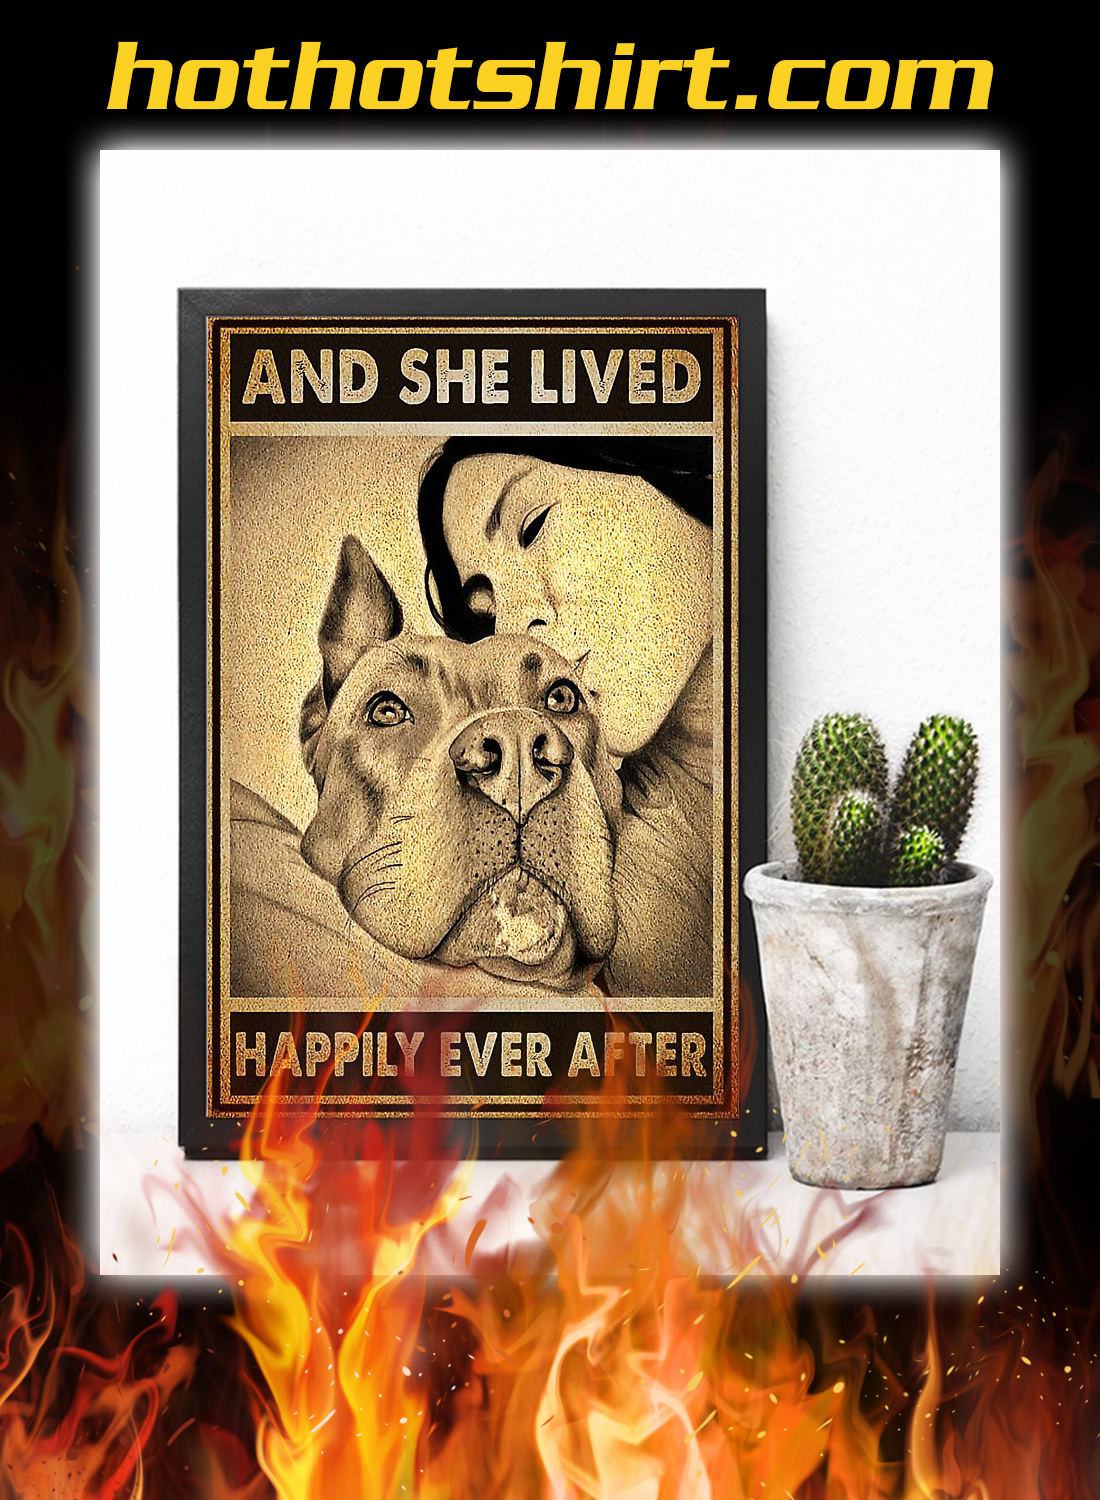 Pitbull and she lived happily ever after poster 2